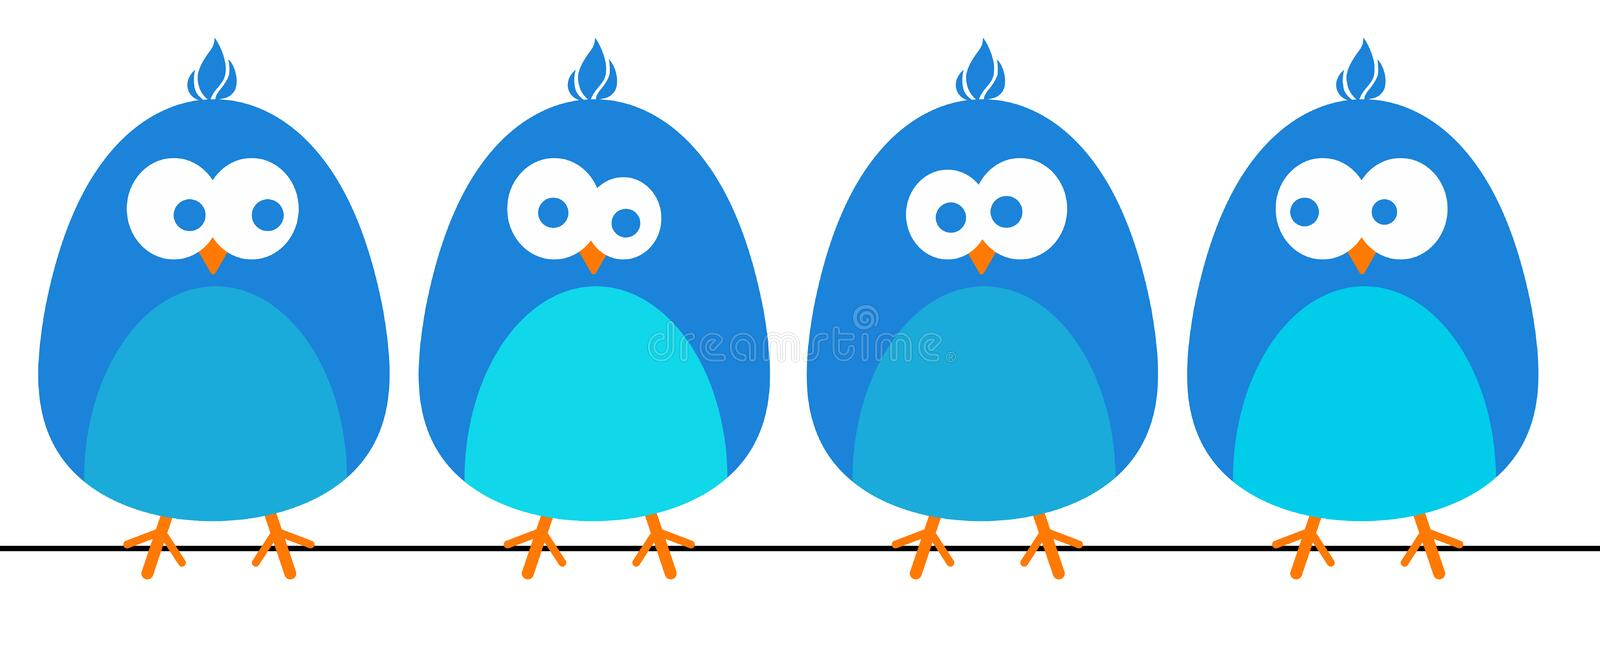 Blue birds stock illustration